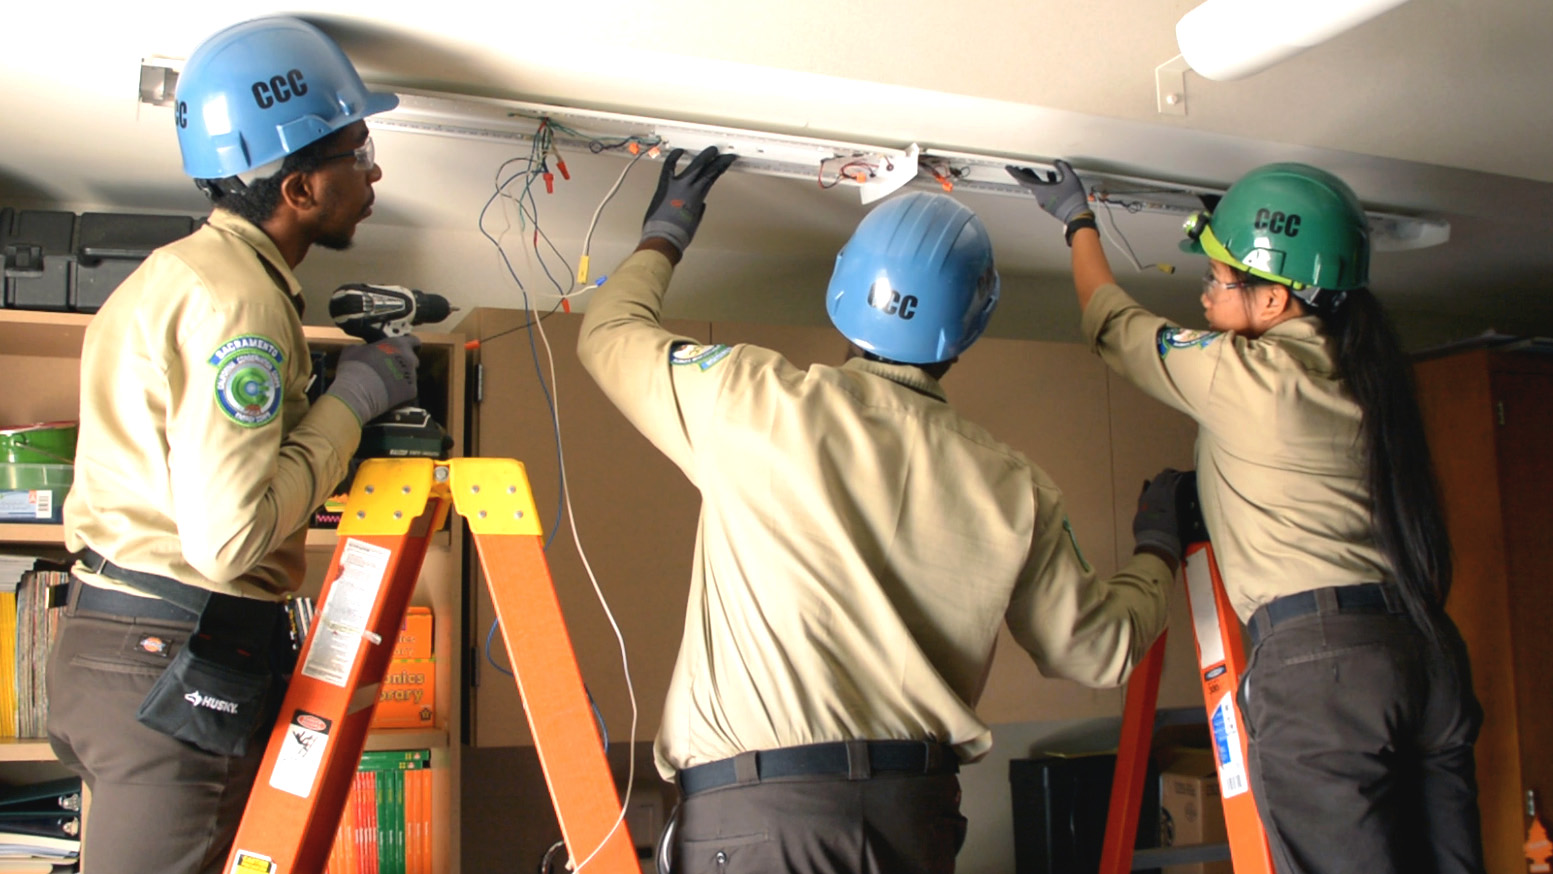 Image. Three Corpsmembers on ladders in protective equipment look at how to install energy efficient light fixture